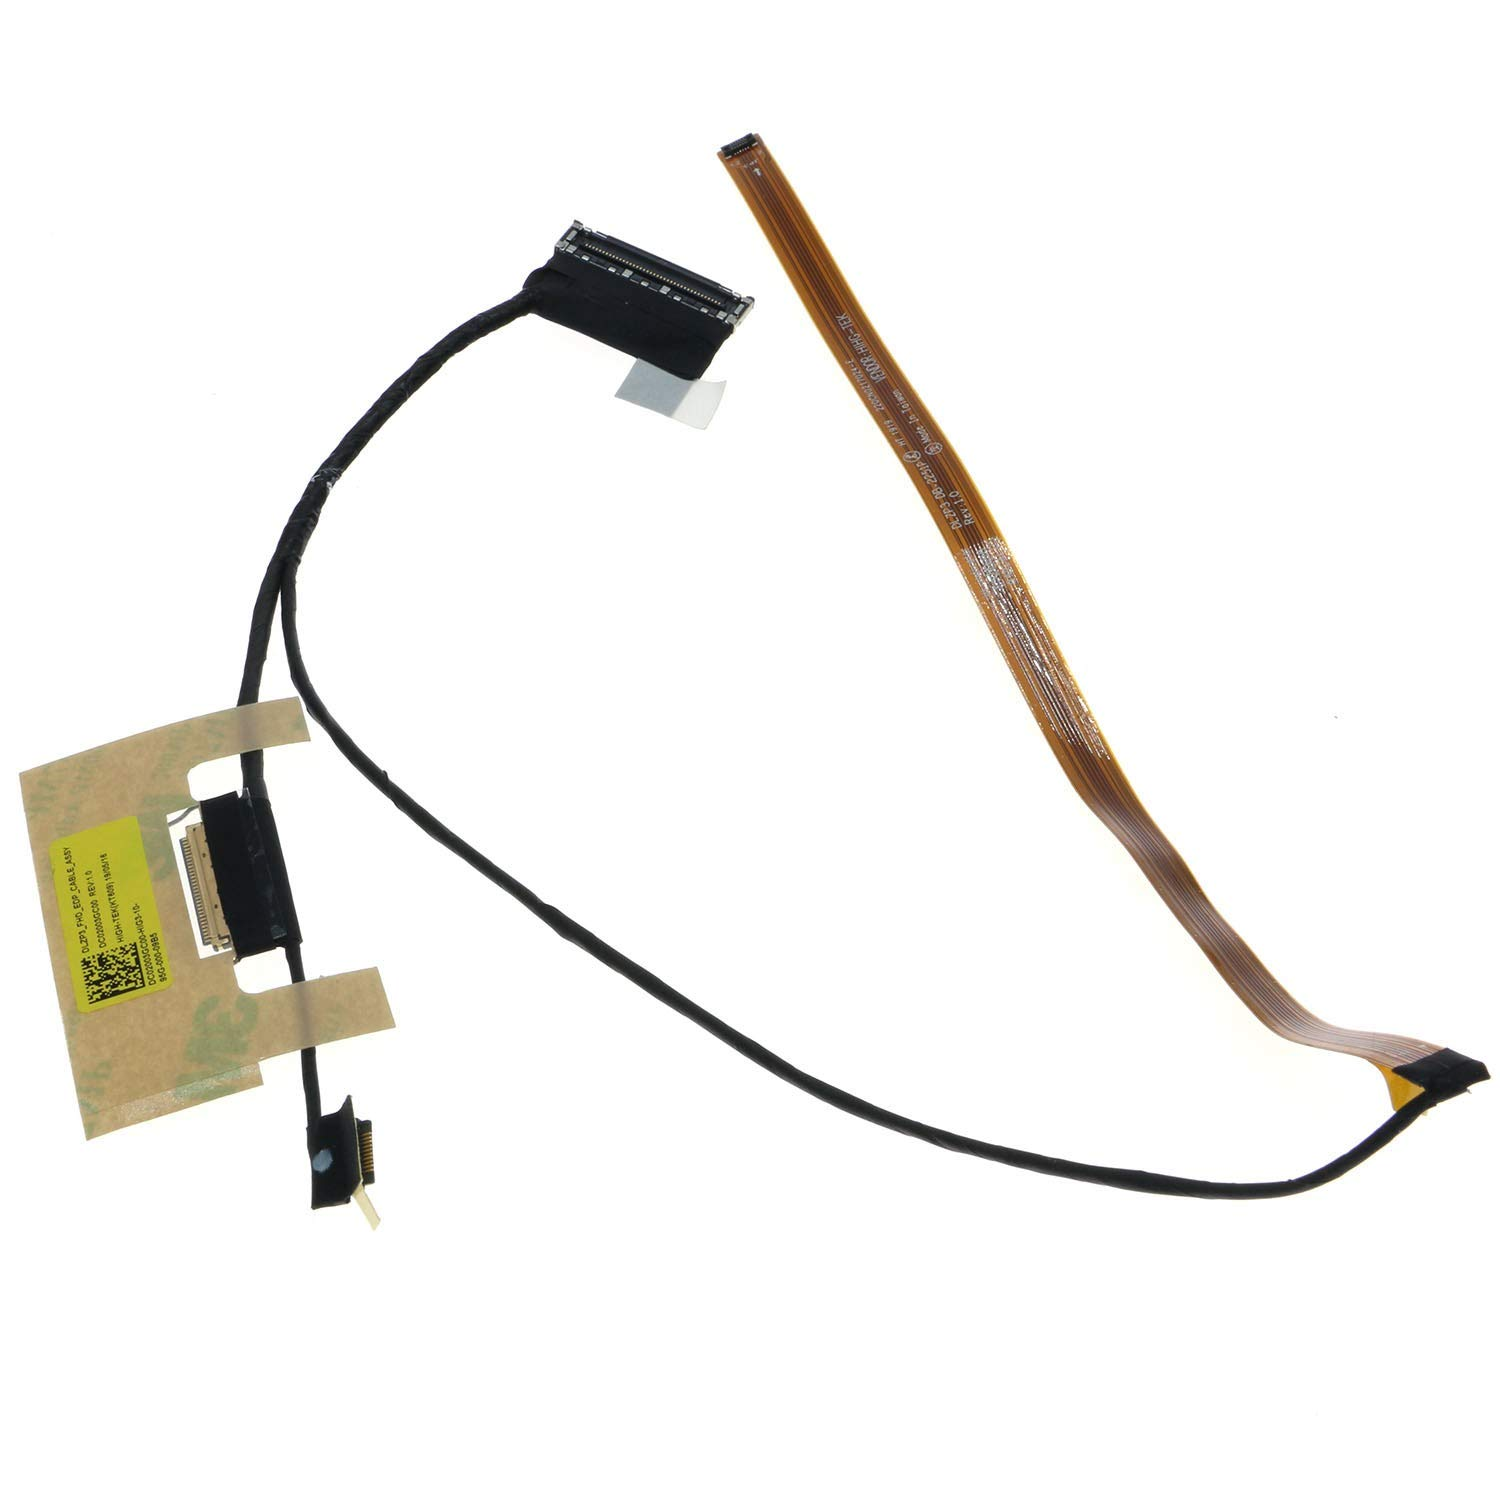 Amazon.com: LCD Screen Display Cable for Lenovo Yoga 730 ...